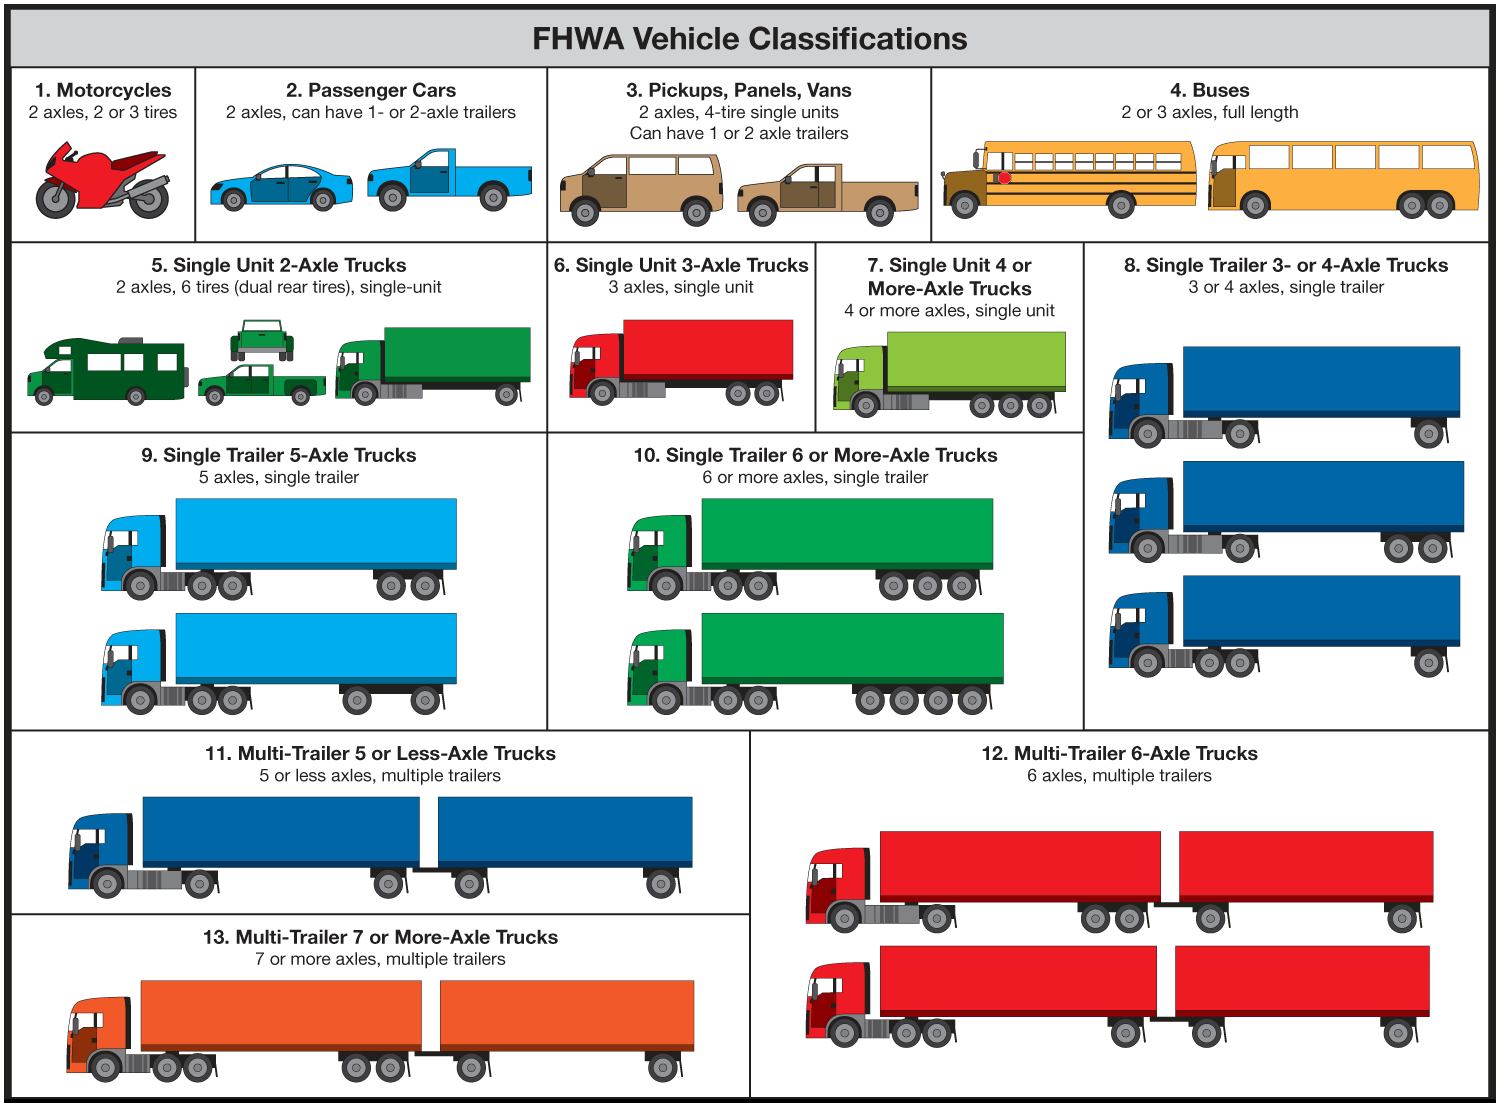 hight resolution of fhwa 13 category scheme for vehicle classifications click in image to see full